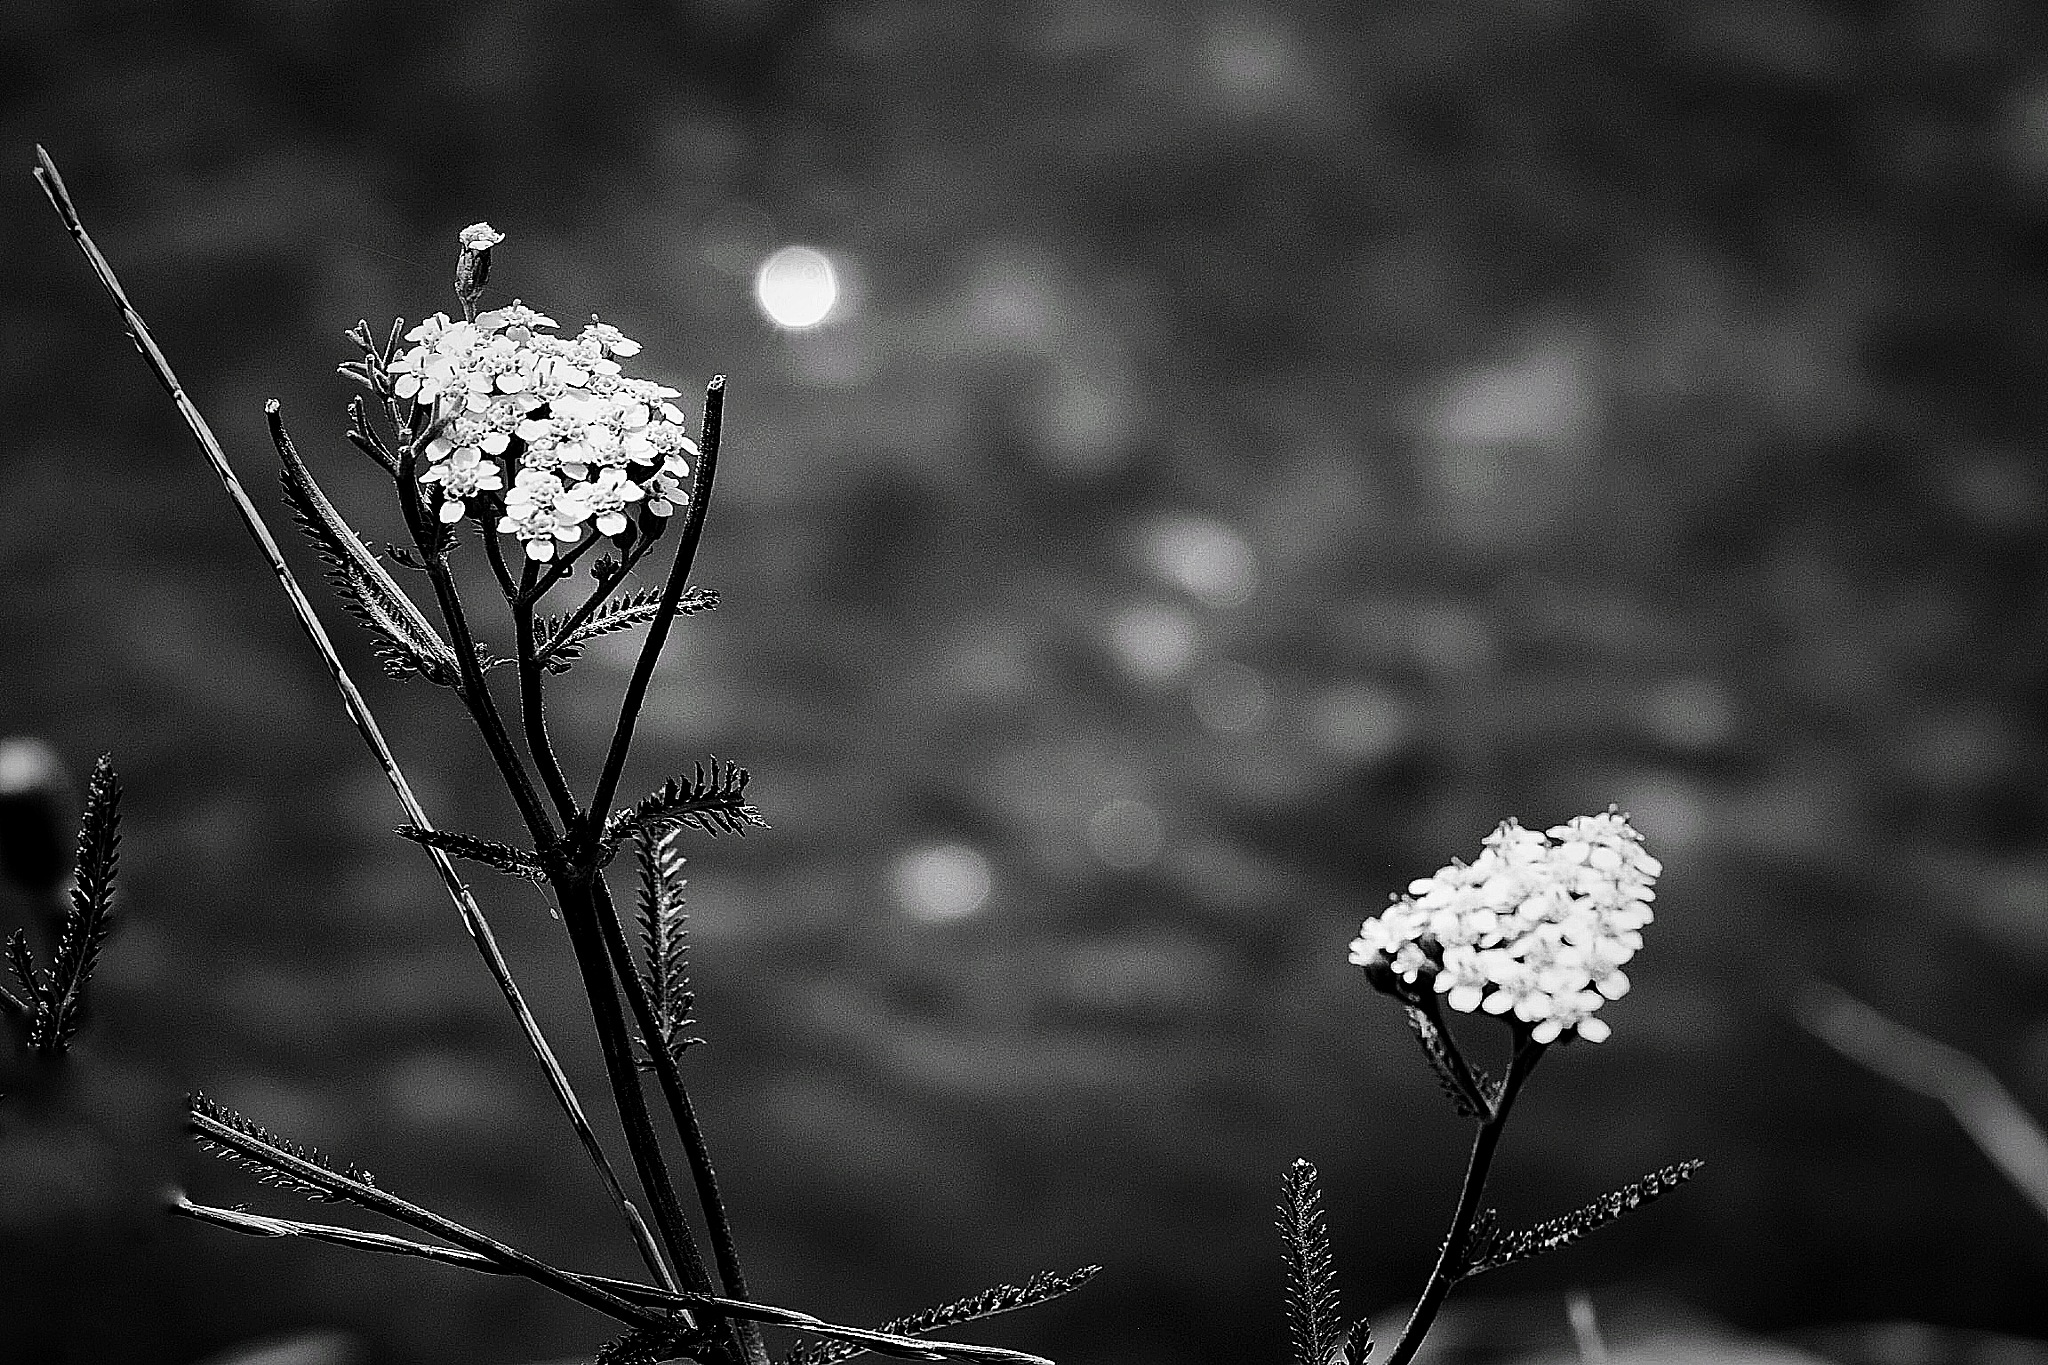 Untitled by Mitalier